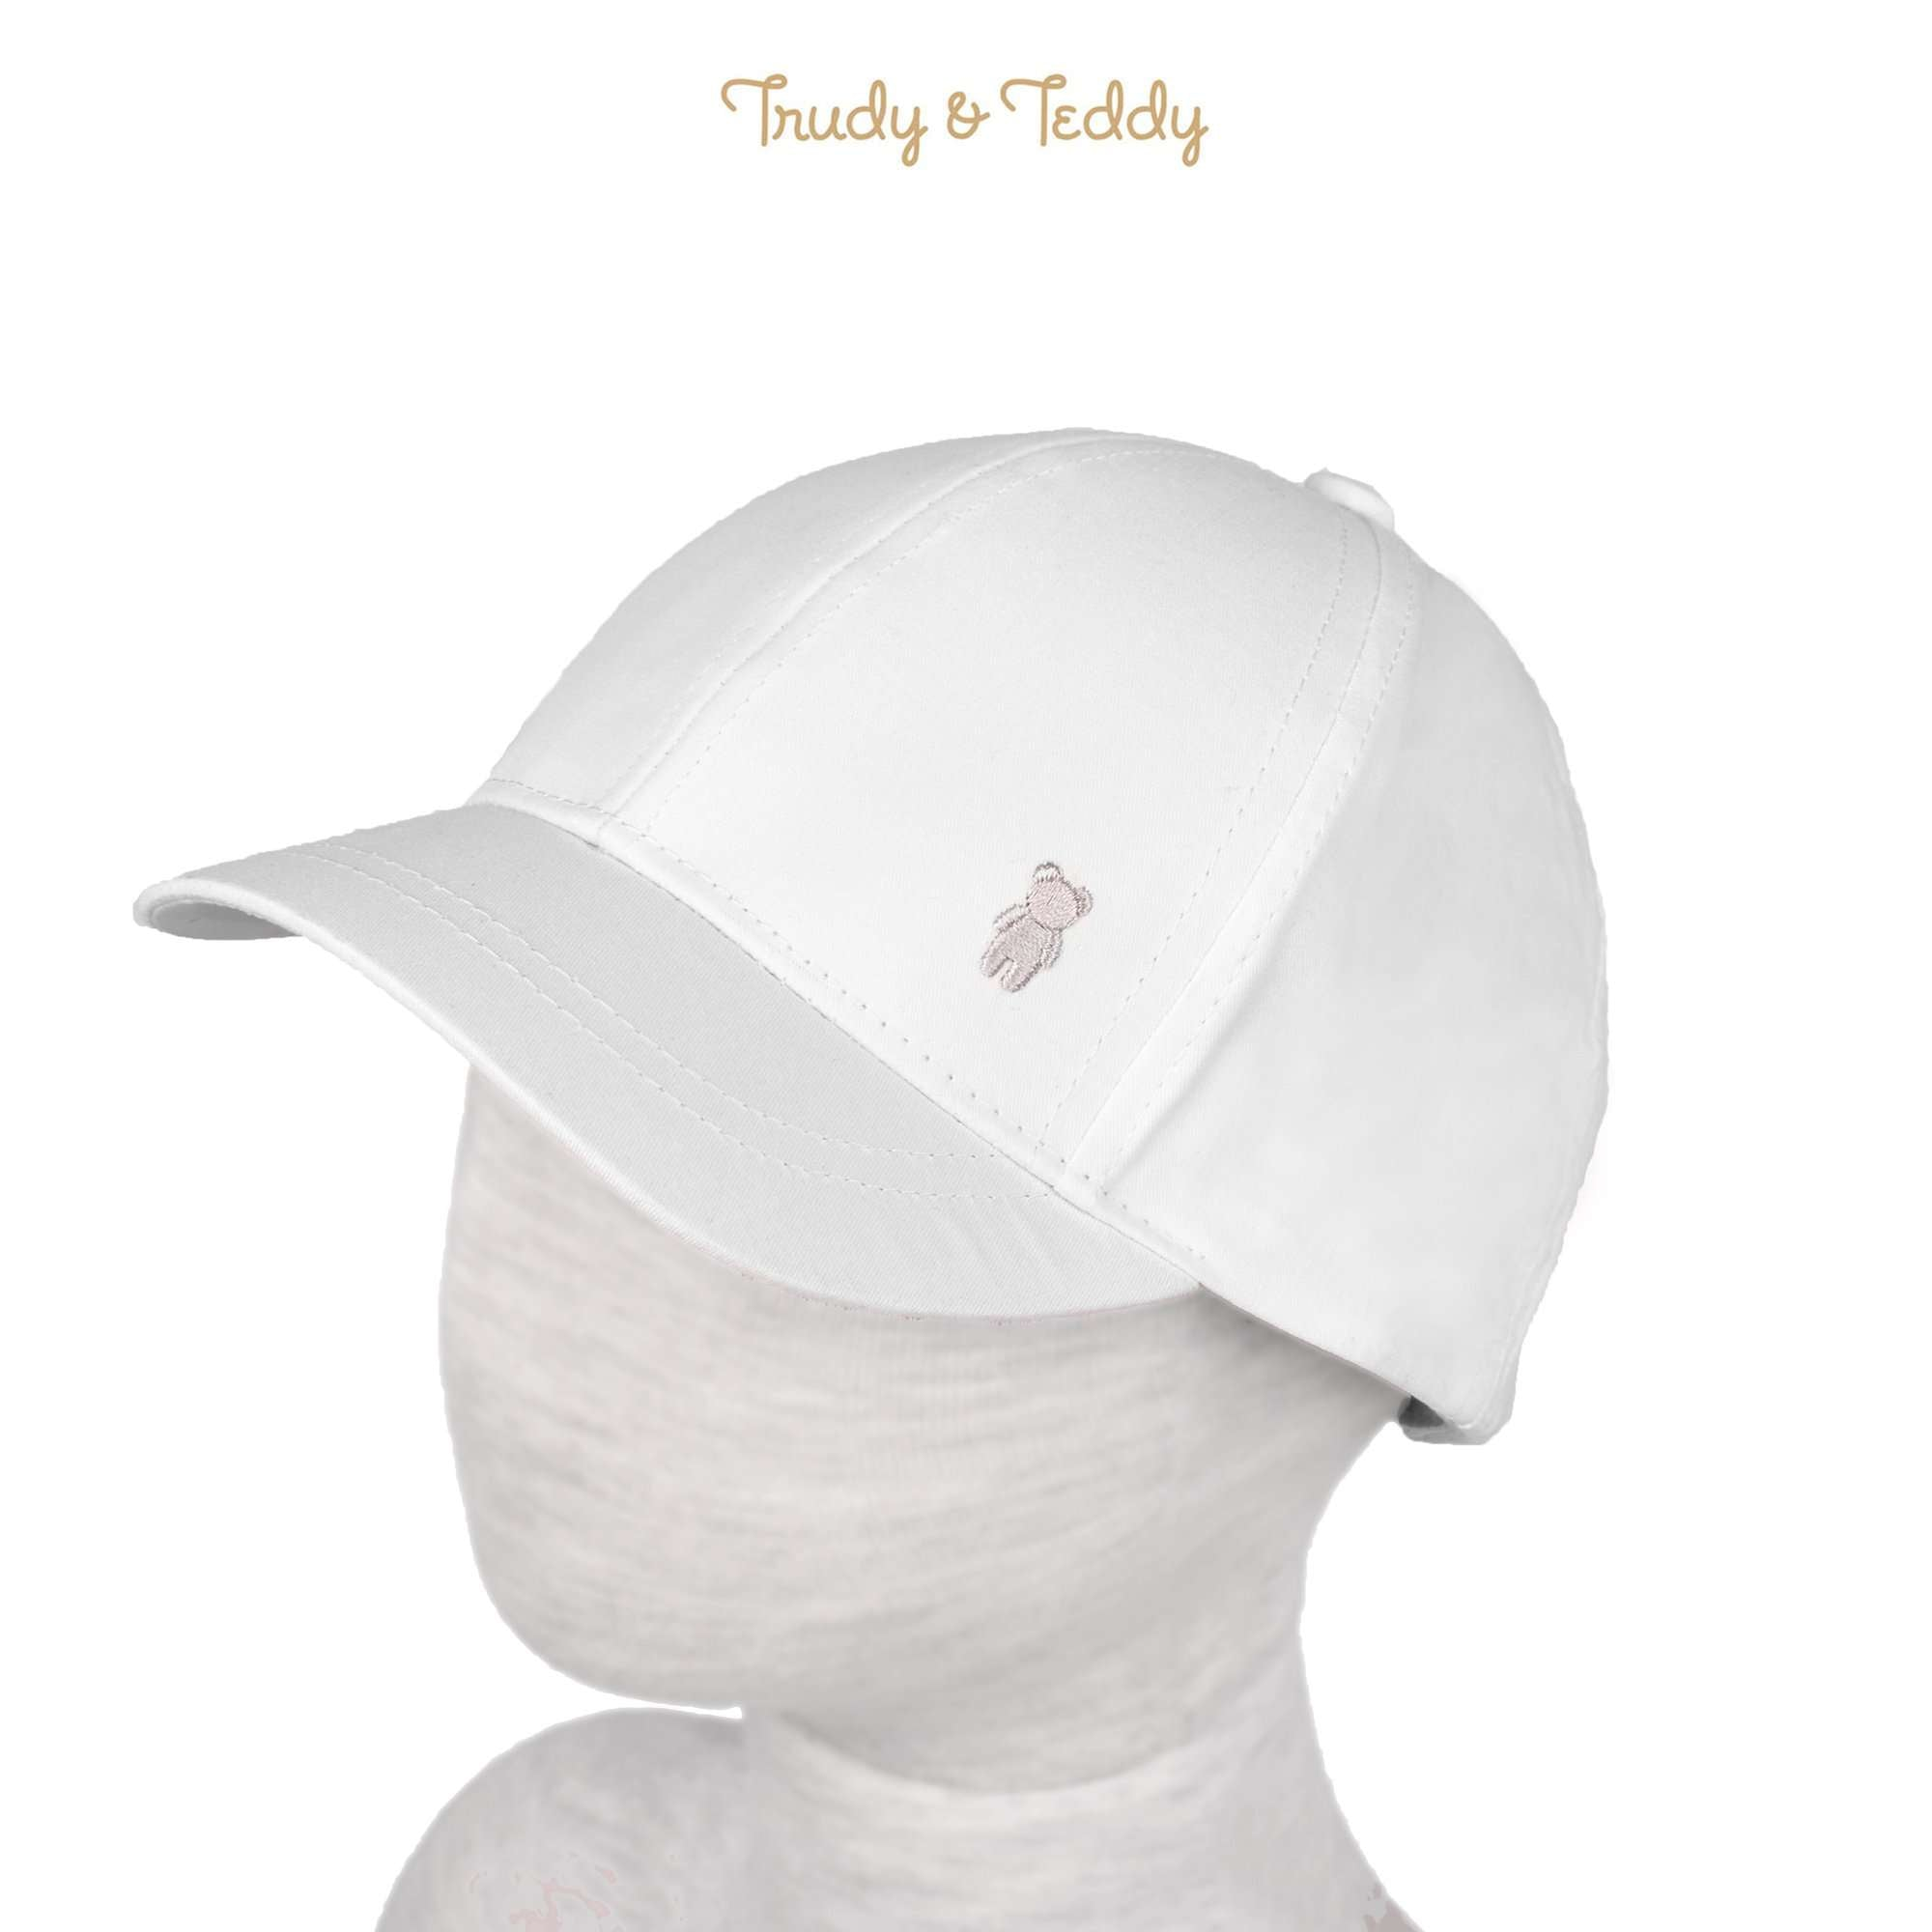 Trudy & Teddy Toddler Boy Cap - White 815158-711 : Buy Trudy & Teddy online at CMG.MY